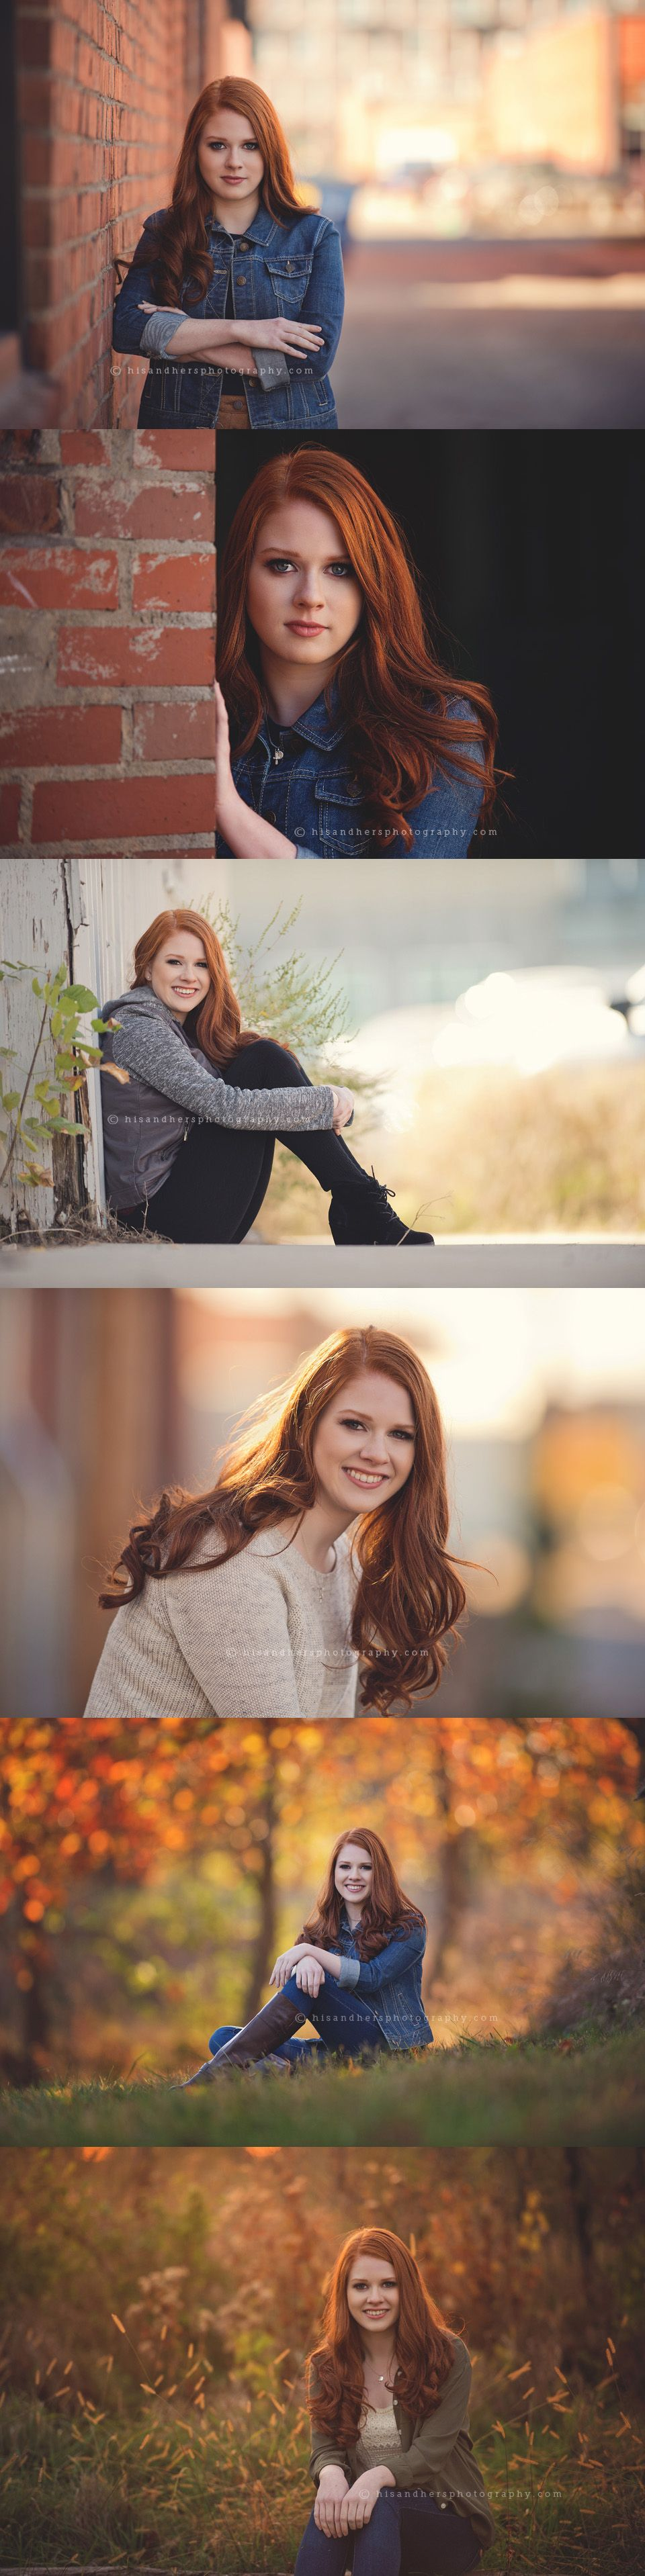 Senior | Allison, class of 2016